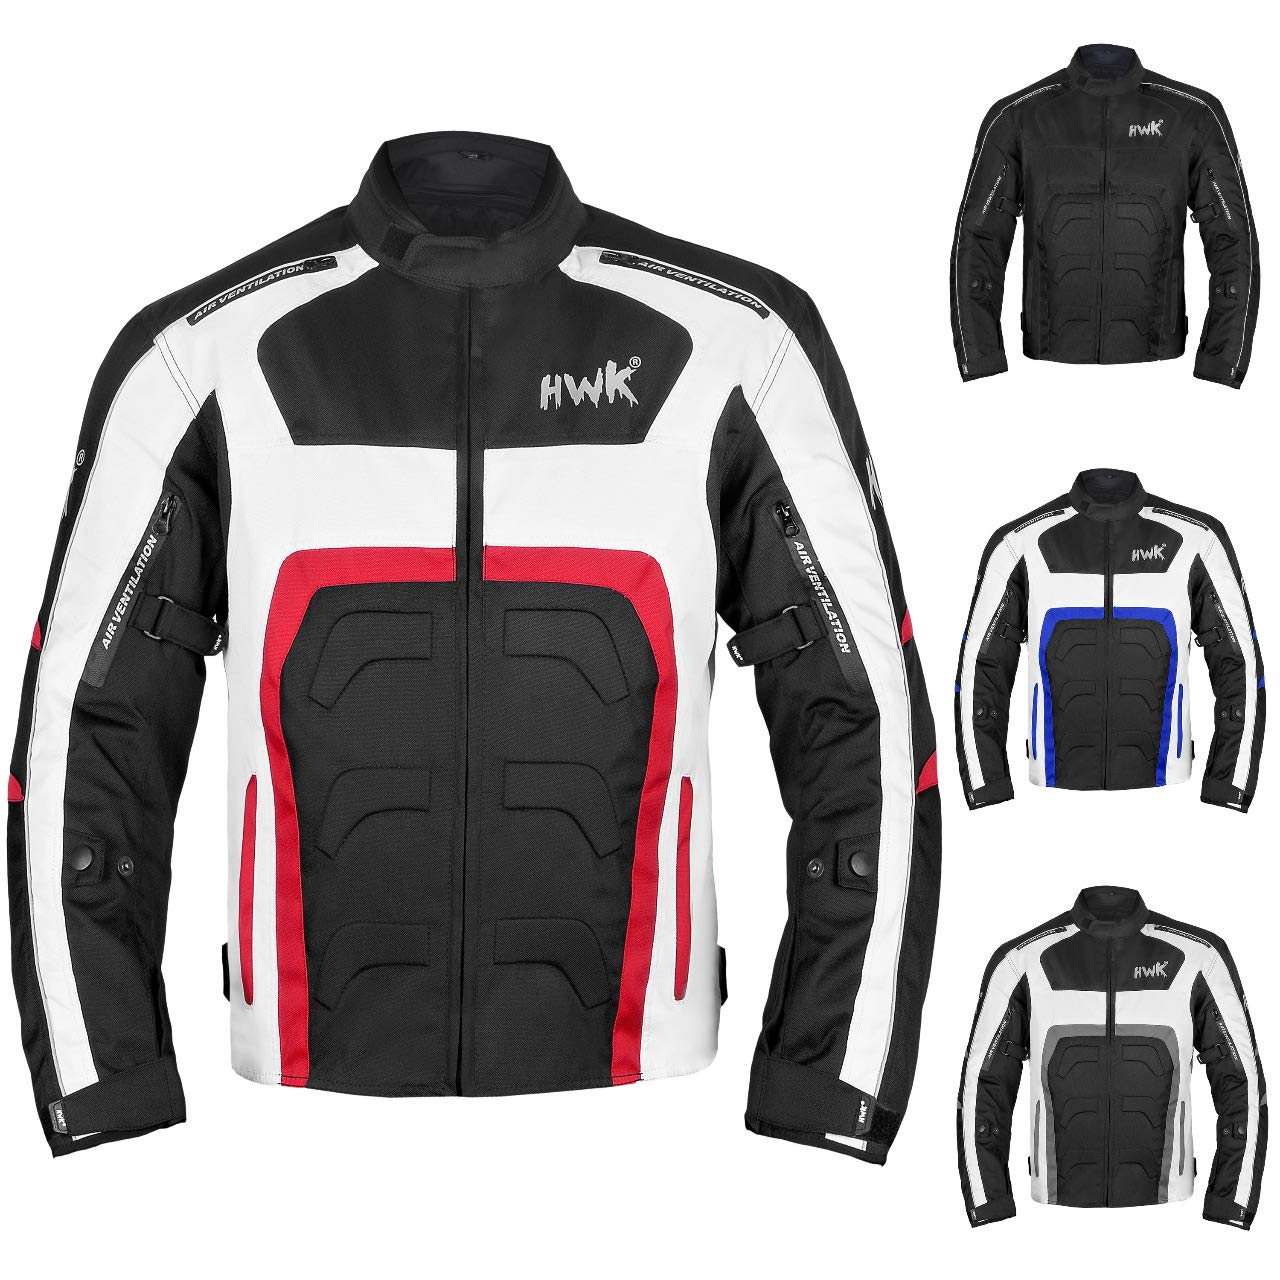 HWK Textile Motorcycle Jacket Motorbike Jacket Biker Riding Jacket Cordura Waterproof CE Armoured Breathable Reissa Membrane - Removable Thermal lining - 1 YEAR WARRANTY!! (Medium, Red)